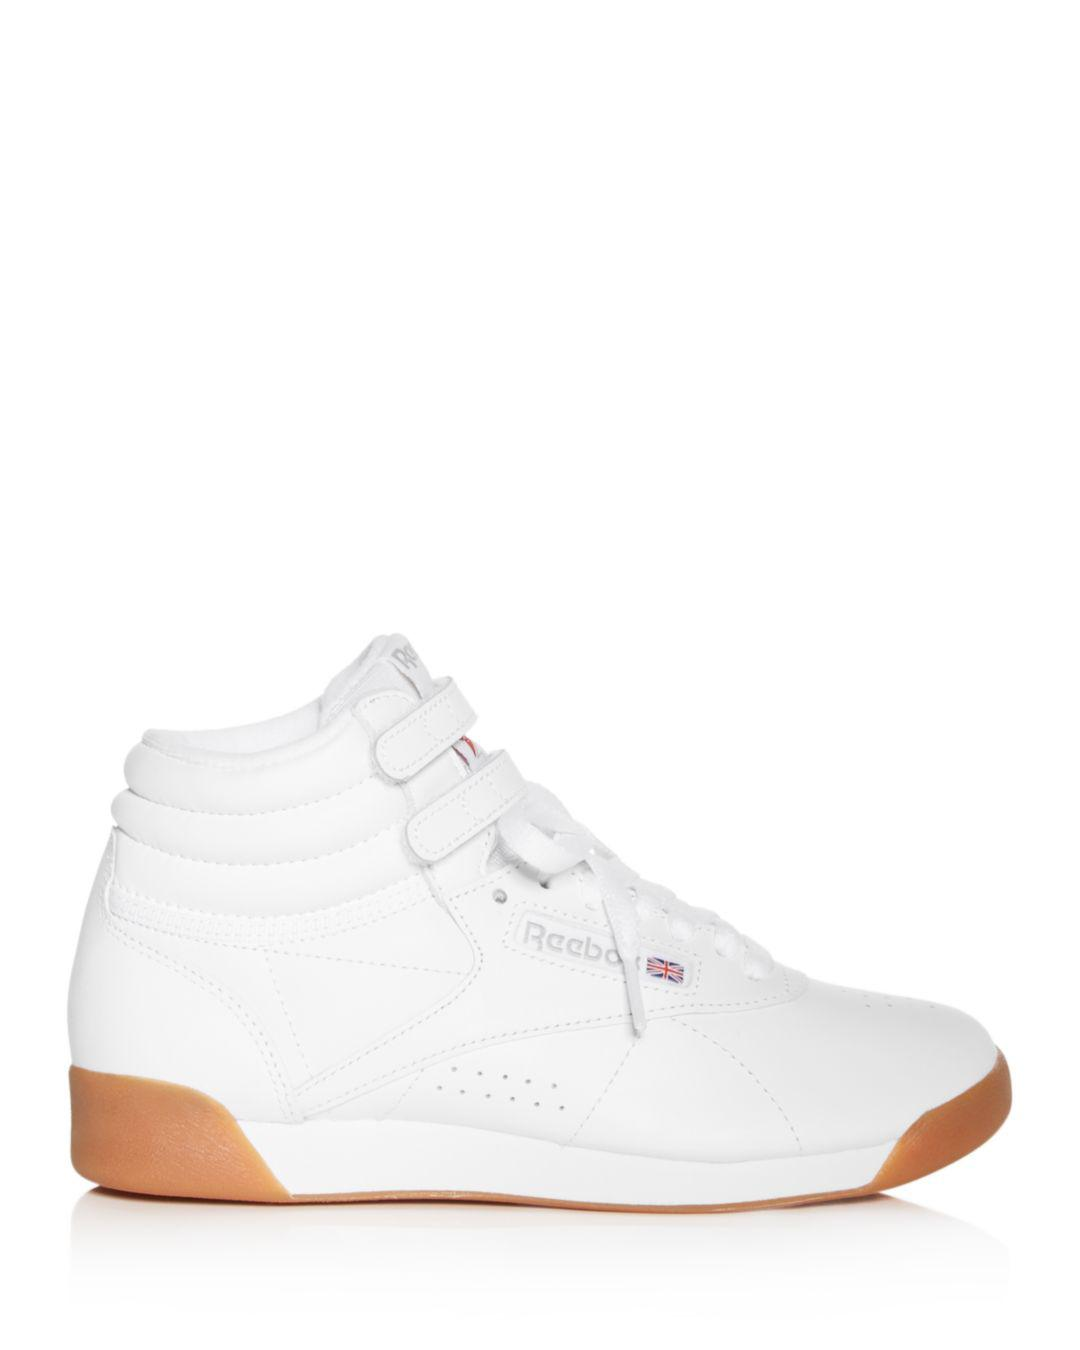 ed3d76a8dea Lyst - Reebok Women s Freestyle Leather High Top Sneakers in White